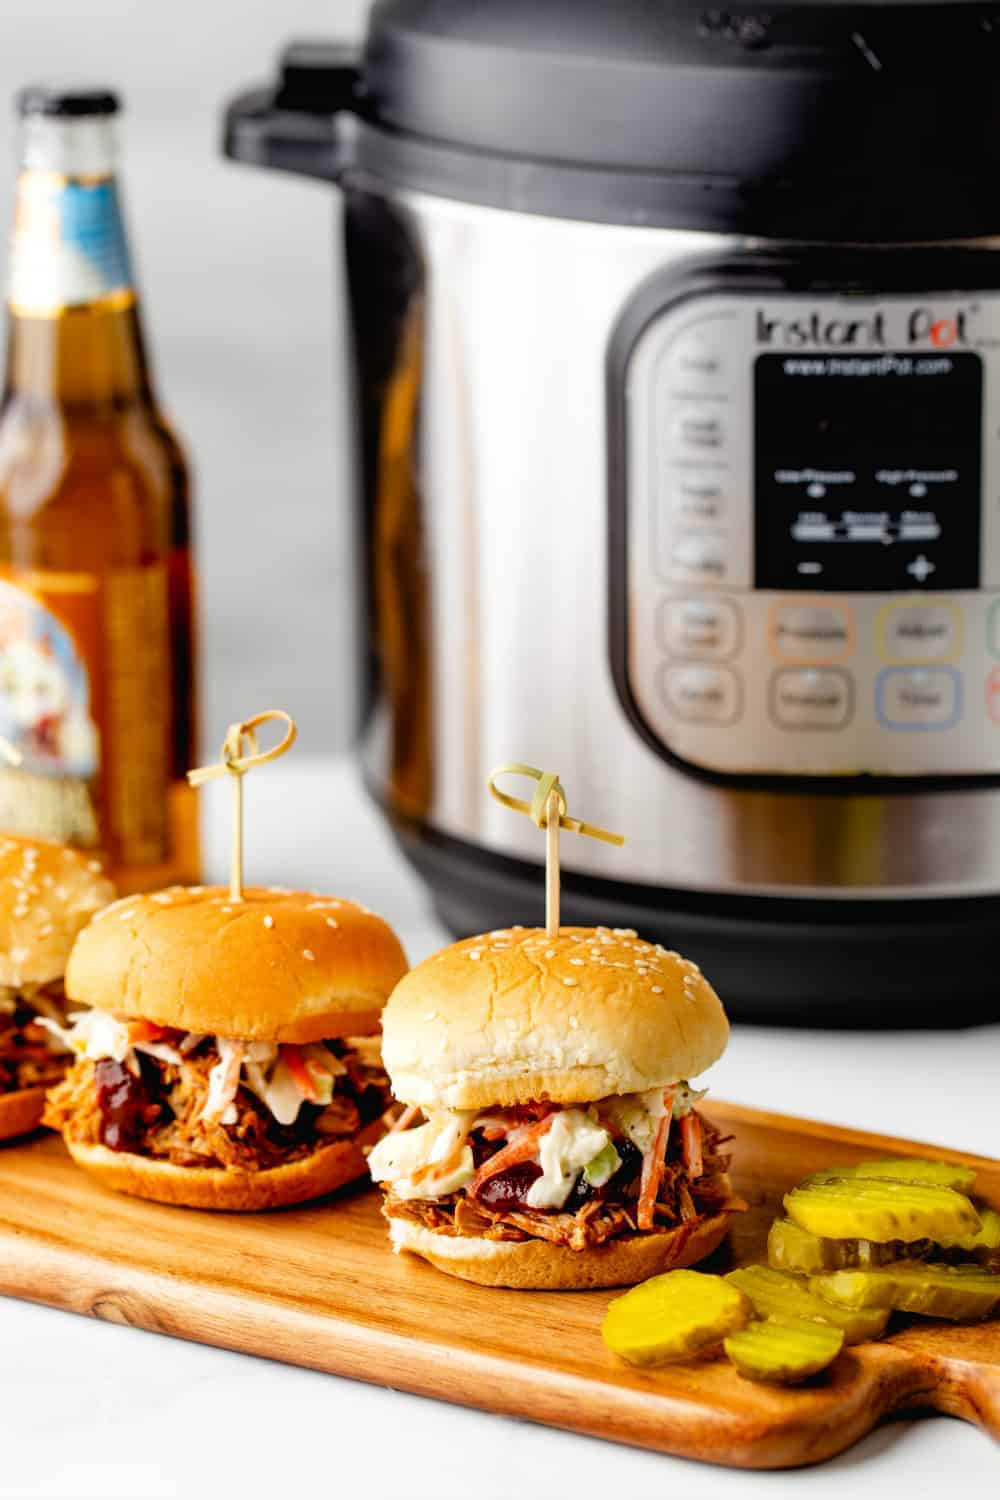 Instant Pot Pulled Pork is just as tangy and juicy as the slow cooker version, but comes together in a fraction of the time.